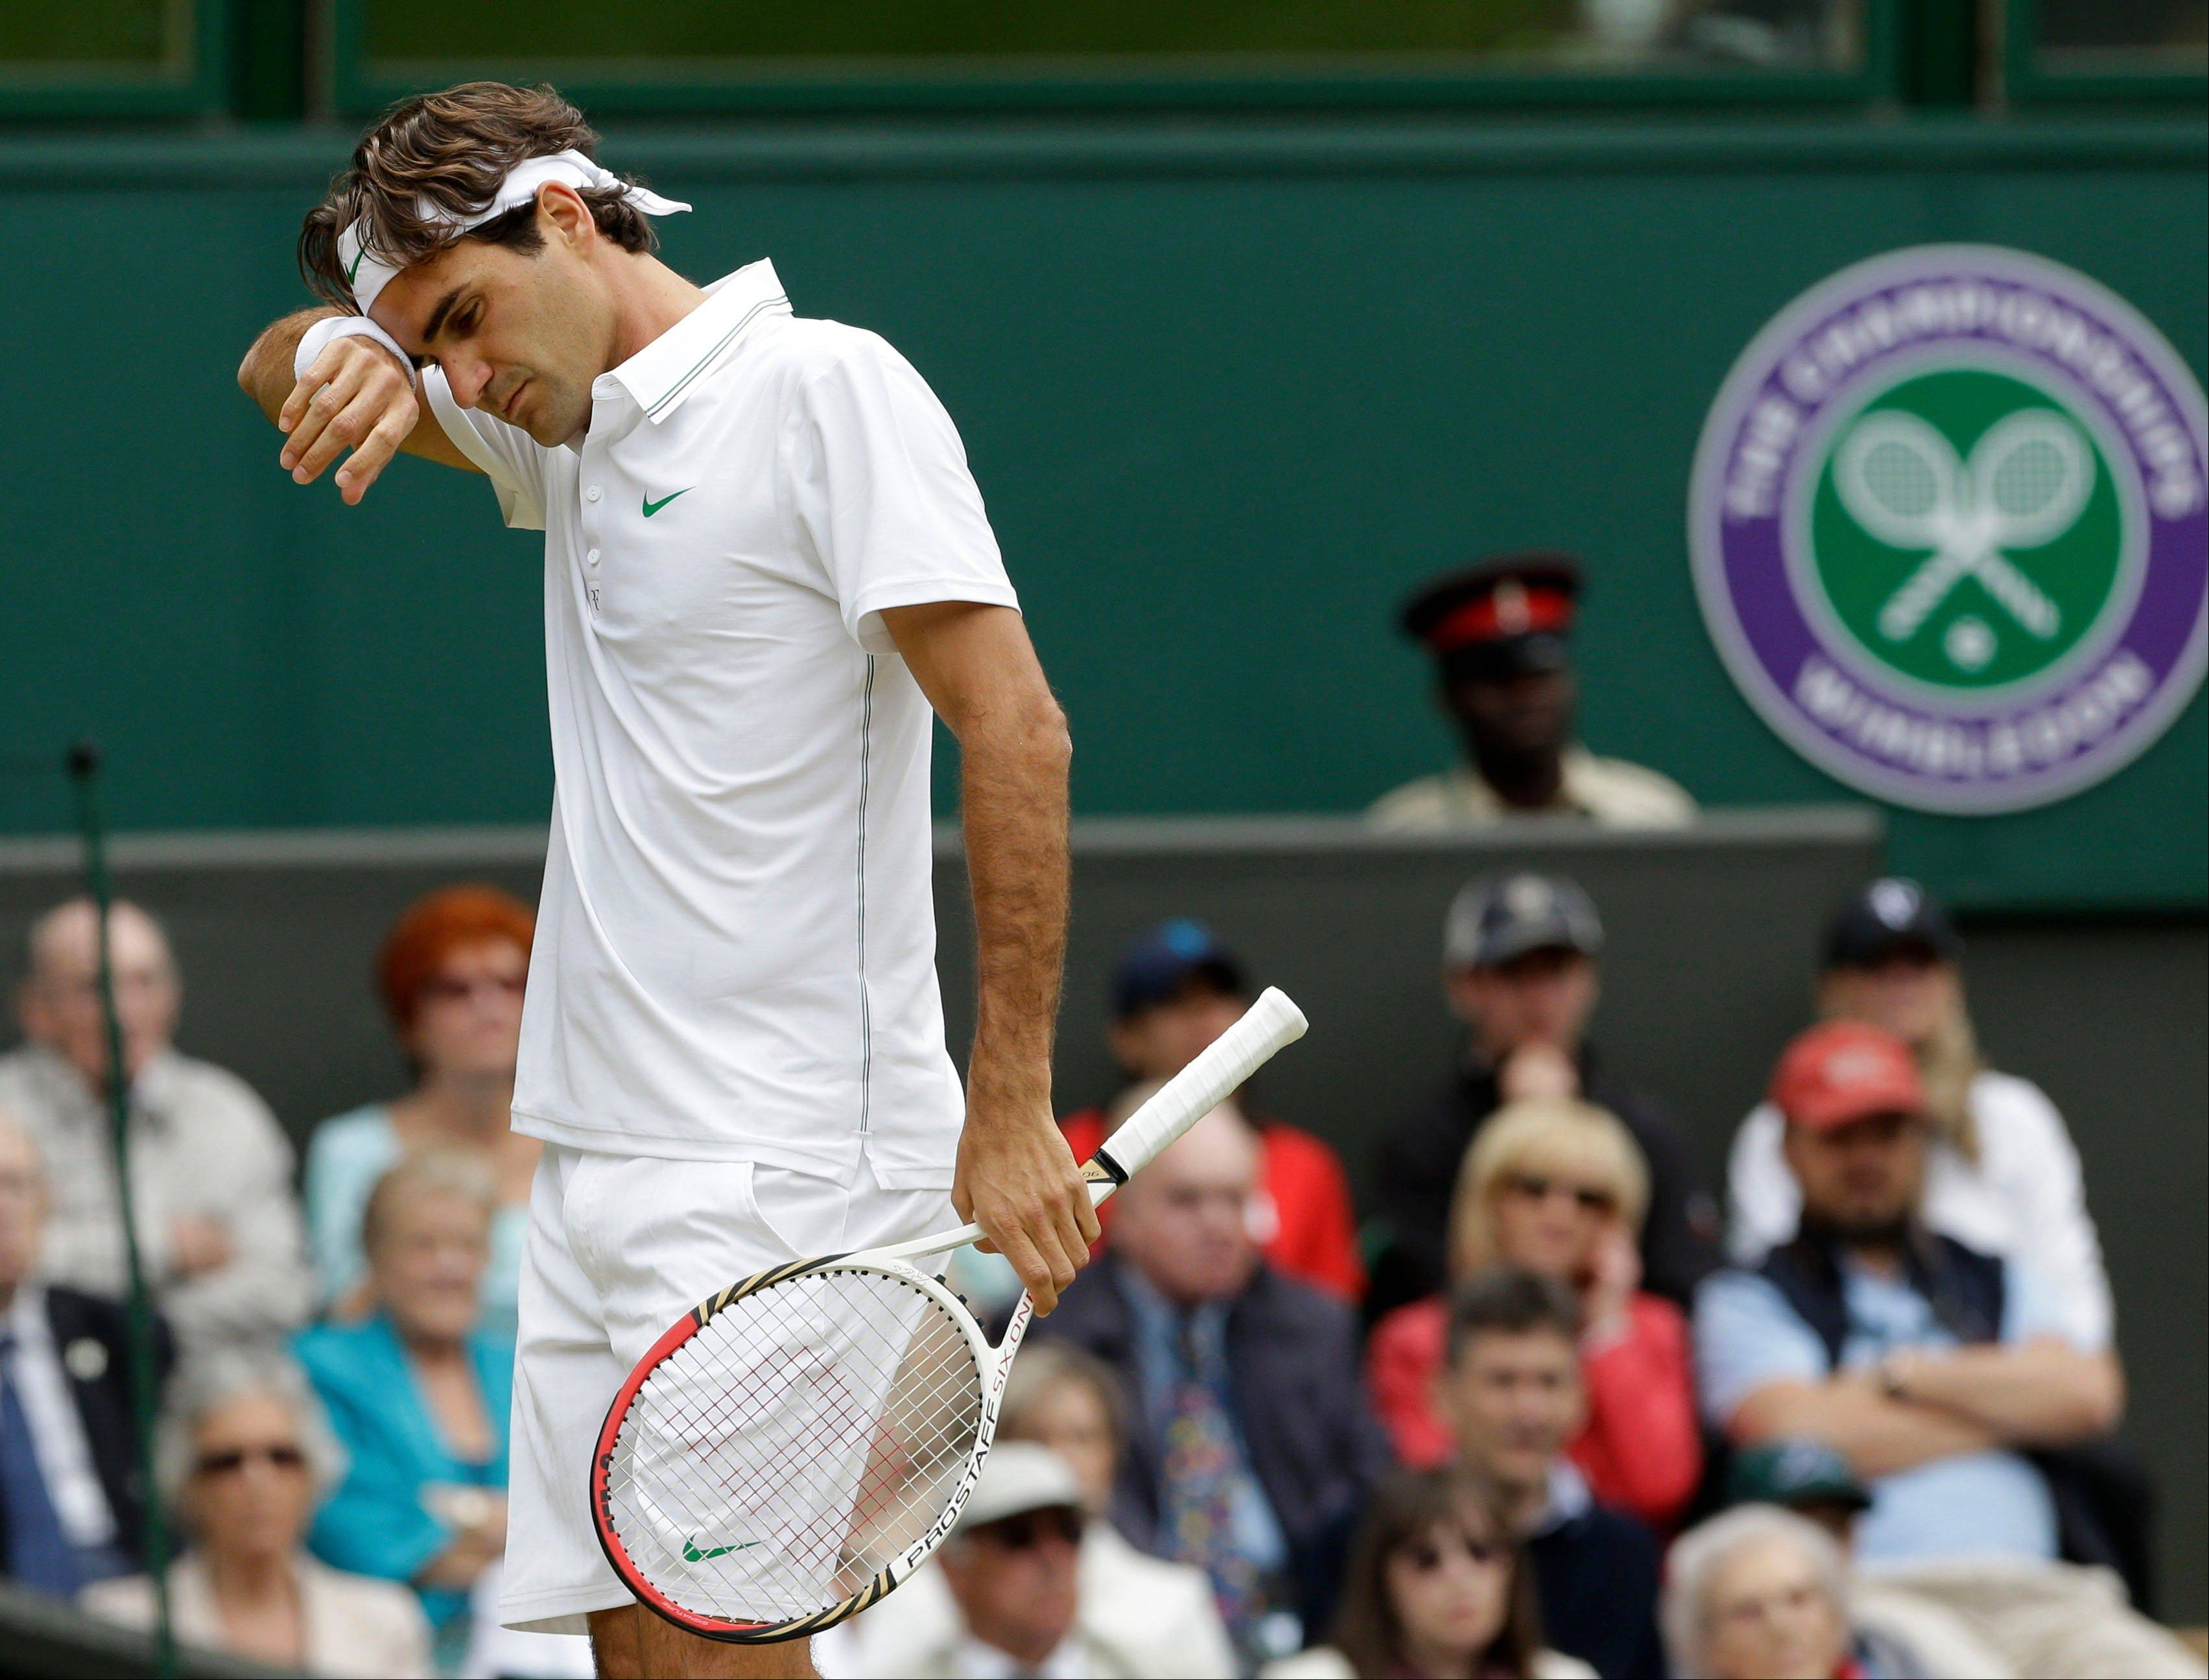 Roger Federer of Switzerland wipes his face during a fourth round singles match Monday against Xavier Malisse of Belgium at the All England Lawn Tennis Championships at Wimbledon, England. Federer needed assistance from a trainer for his back during the match.